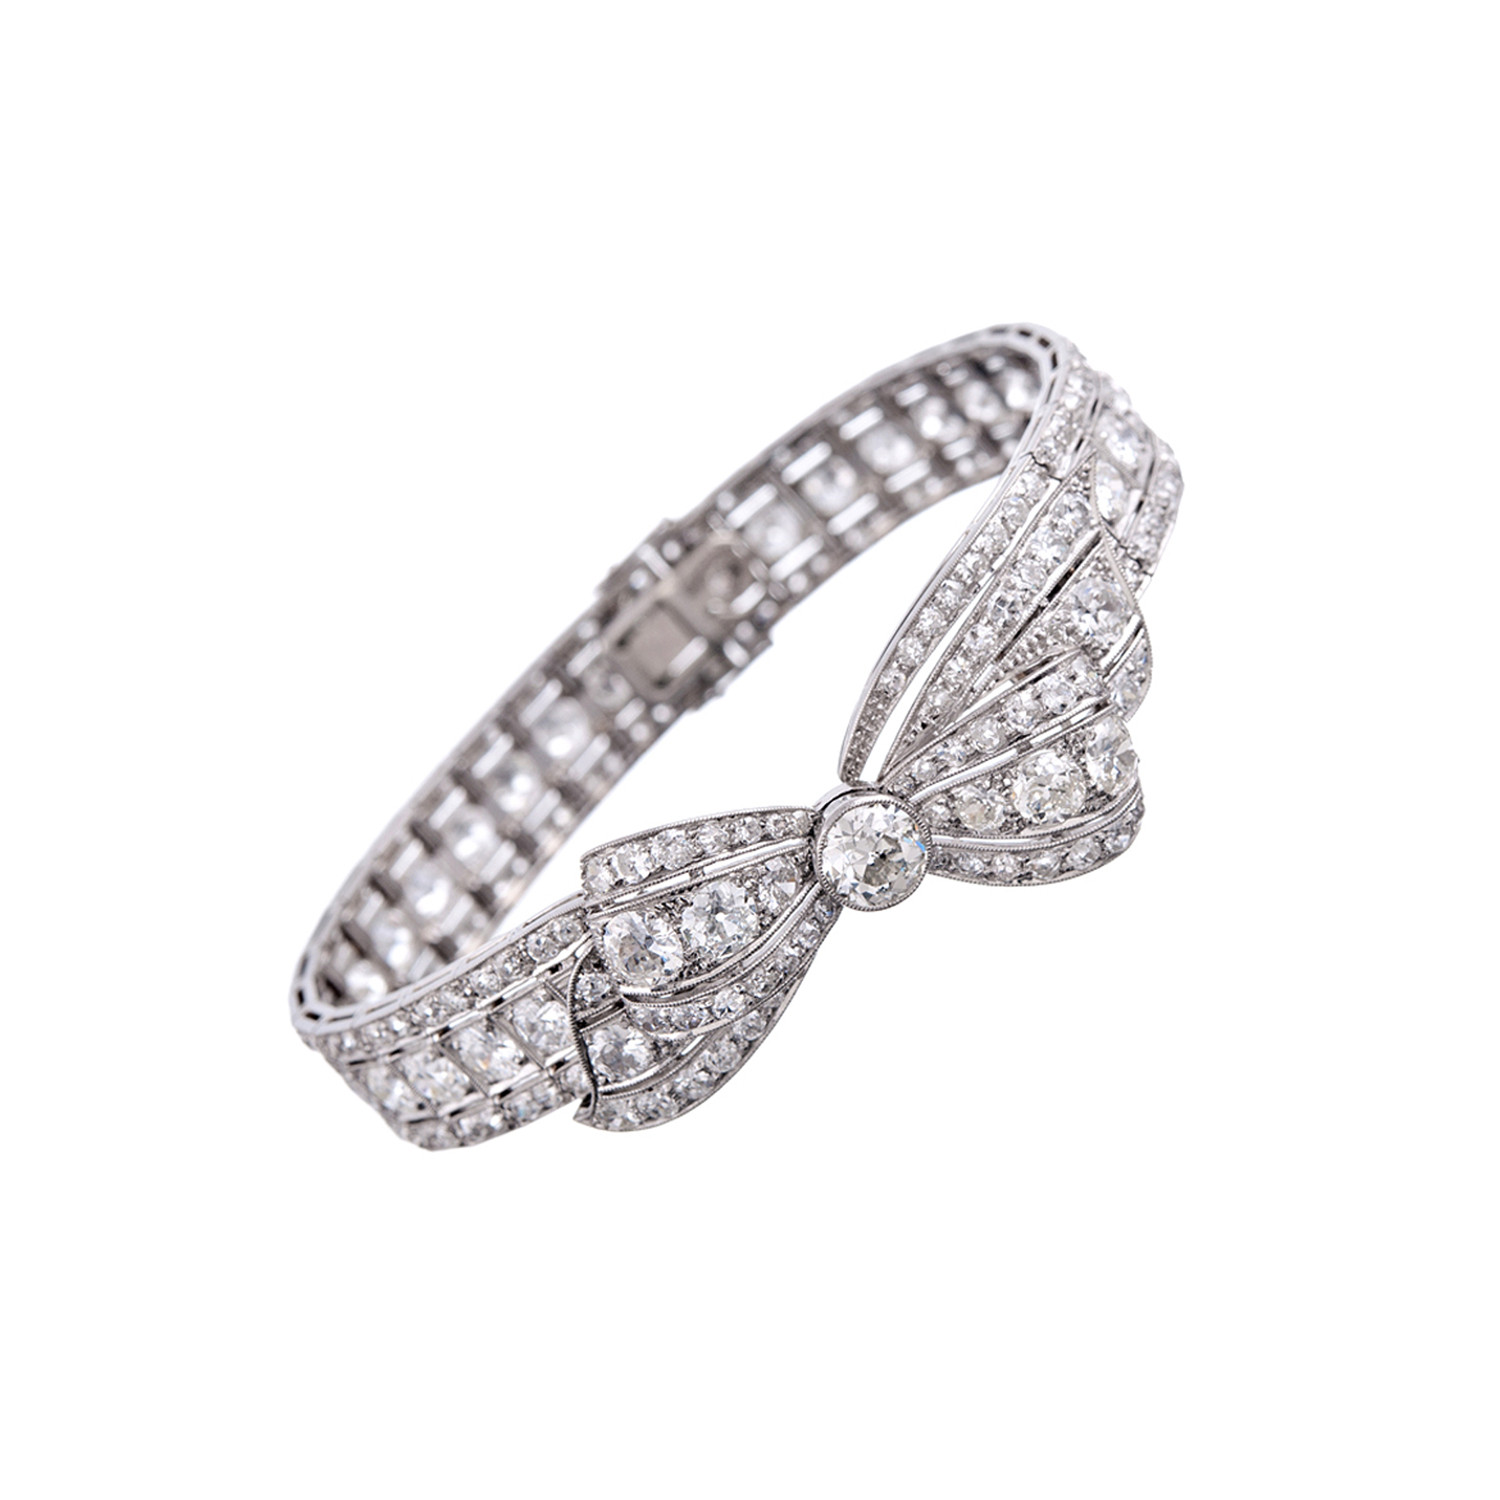 Convertible Platinum & Diamond Bow Bracelet c 1930 s Fourtane